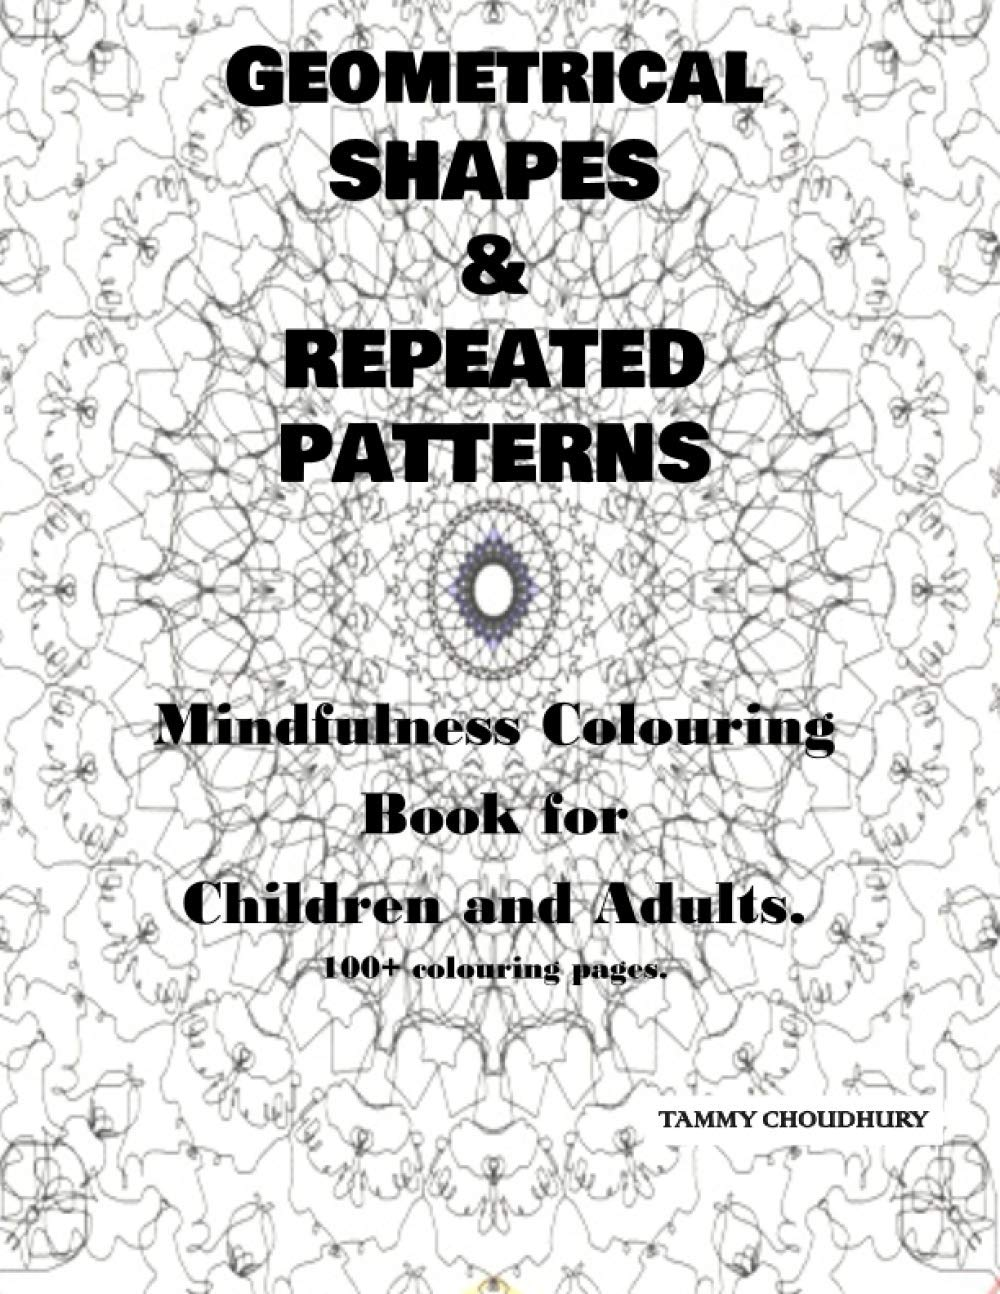 Amazon Com Geometrical Shapes Repeated Patterns Mindfulness Colouring Book For Children And Adults 100 Colouring Pages 9798684461316 Choudhury Miss Tammy Books